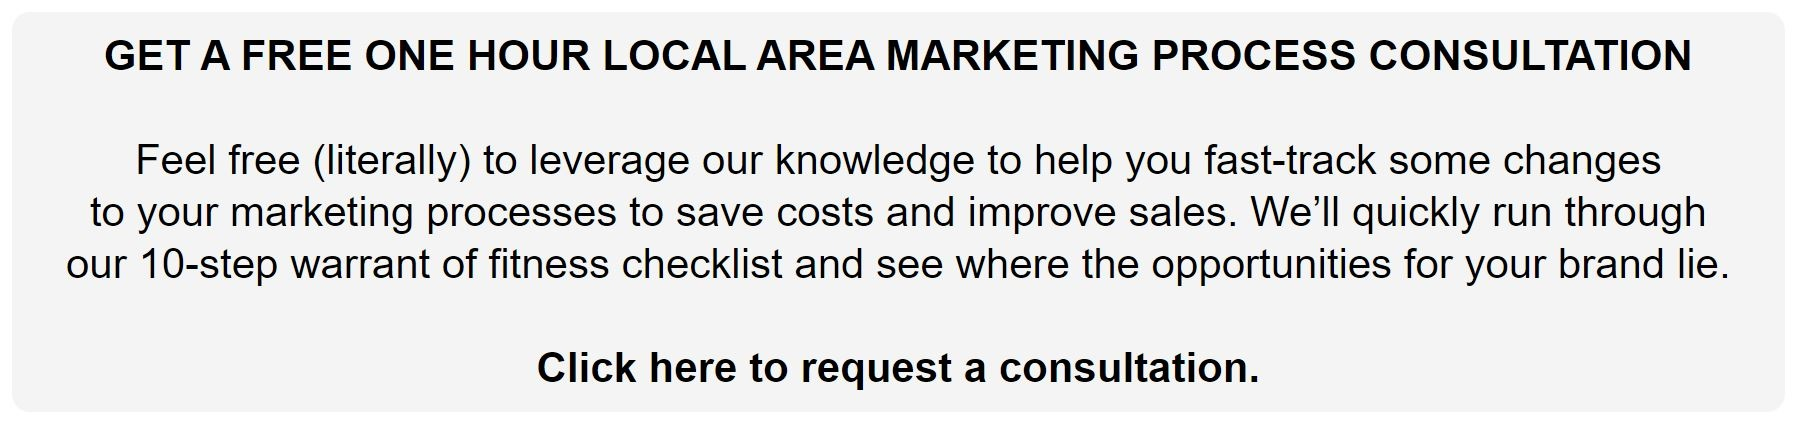 GET A FREE ONE HOUR LOCAL AREA MARKETING PROCESS CONSULTATION  Feel free (literally) to leverage our knowledge to help you fast-track some  changes  to your marketing processes to save costs and improve sales. We'll quickly run  through   our 10-step warrant of fitness checklist and see where the opportunities for  your brand lie.    Click here to request a consultation.